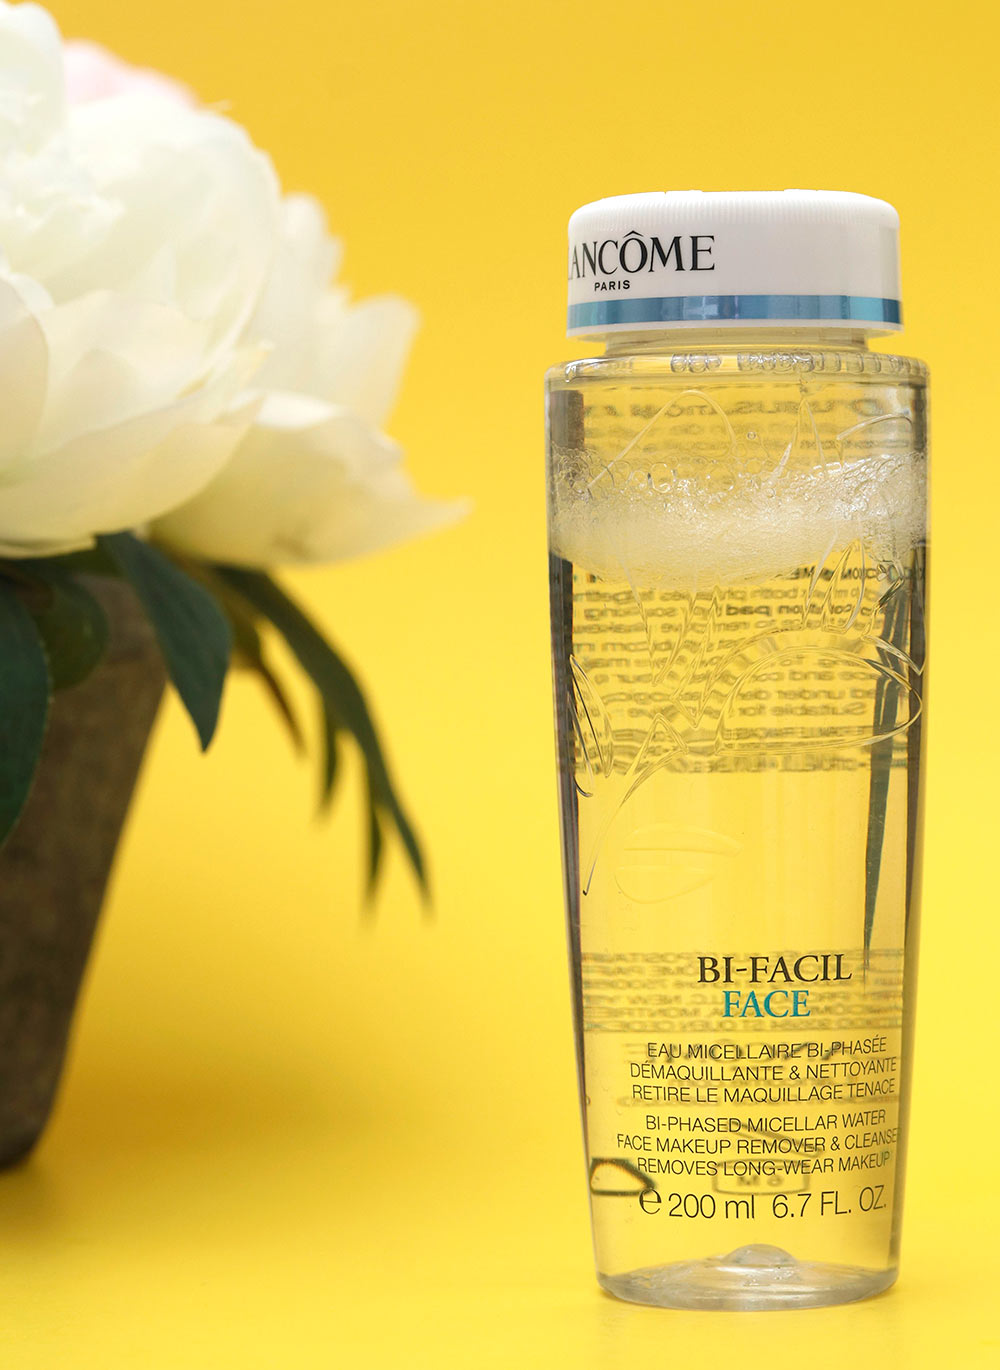 Is Lancme Bi Facil Face Makeup Remover A Lazy Girls Dream Come Holiday Series Paris Im In Love 200ml Lancome Review